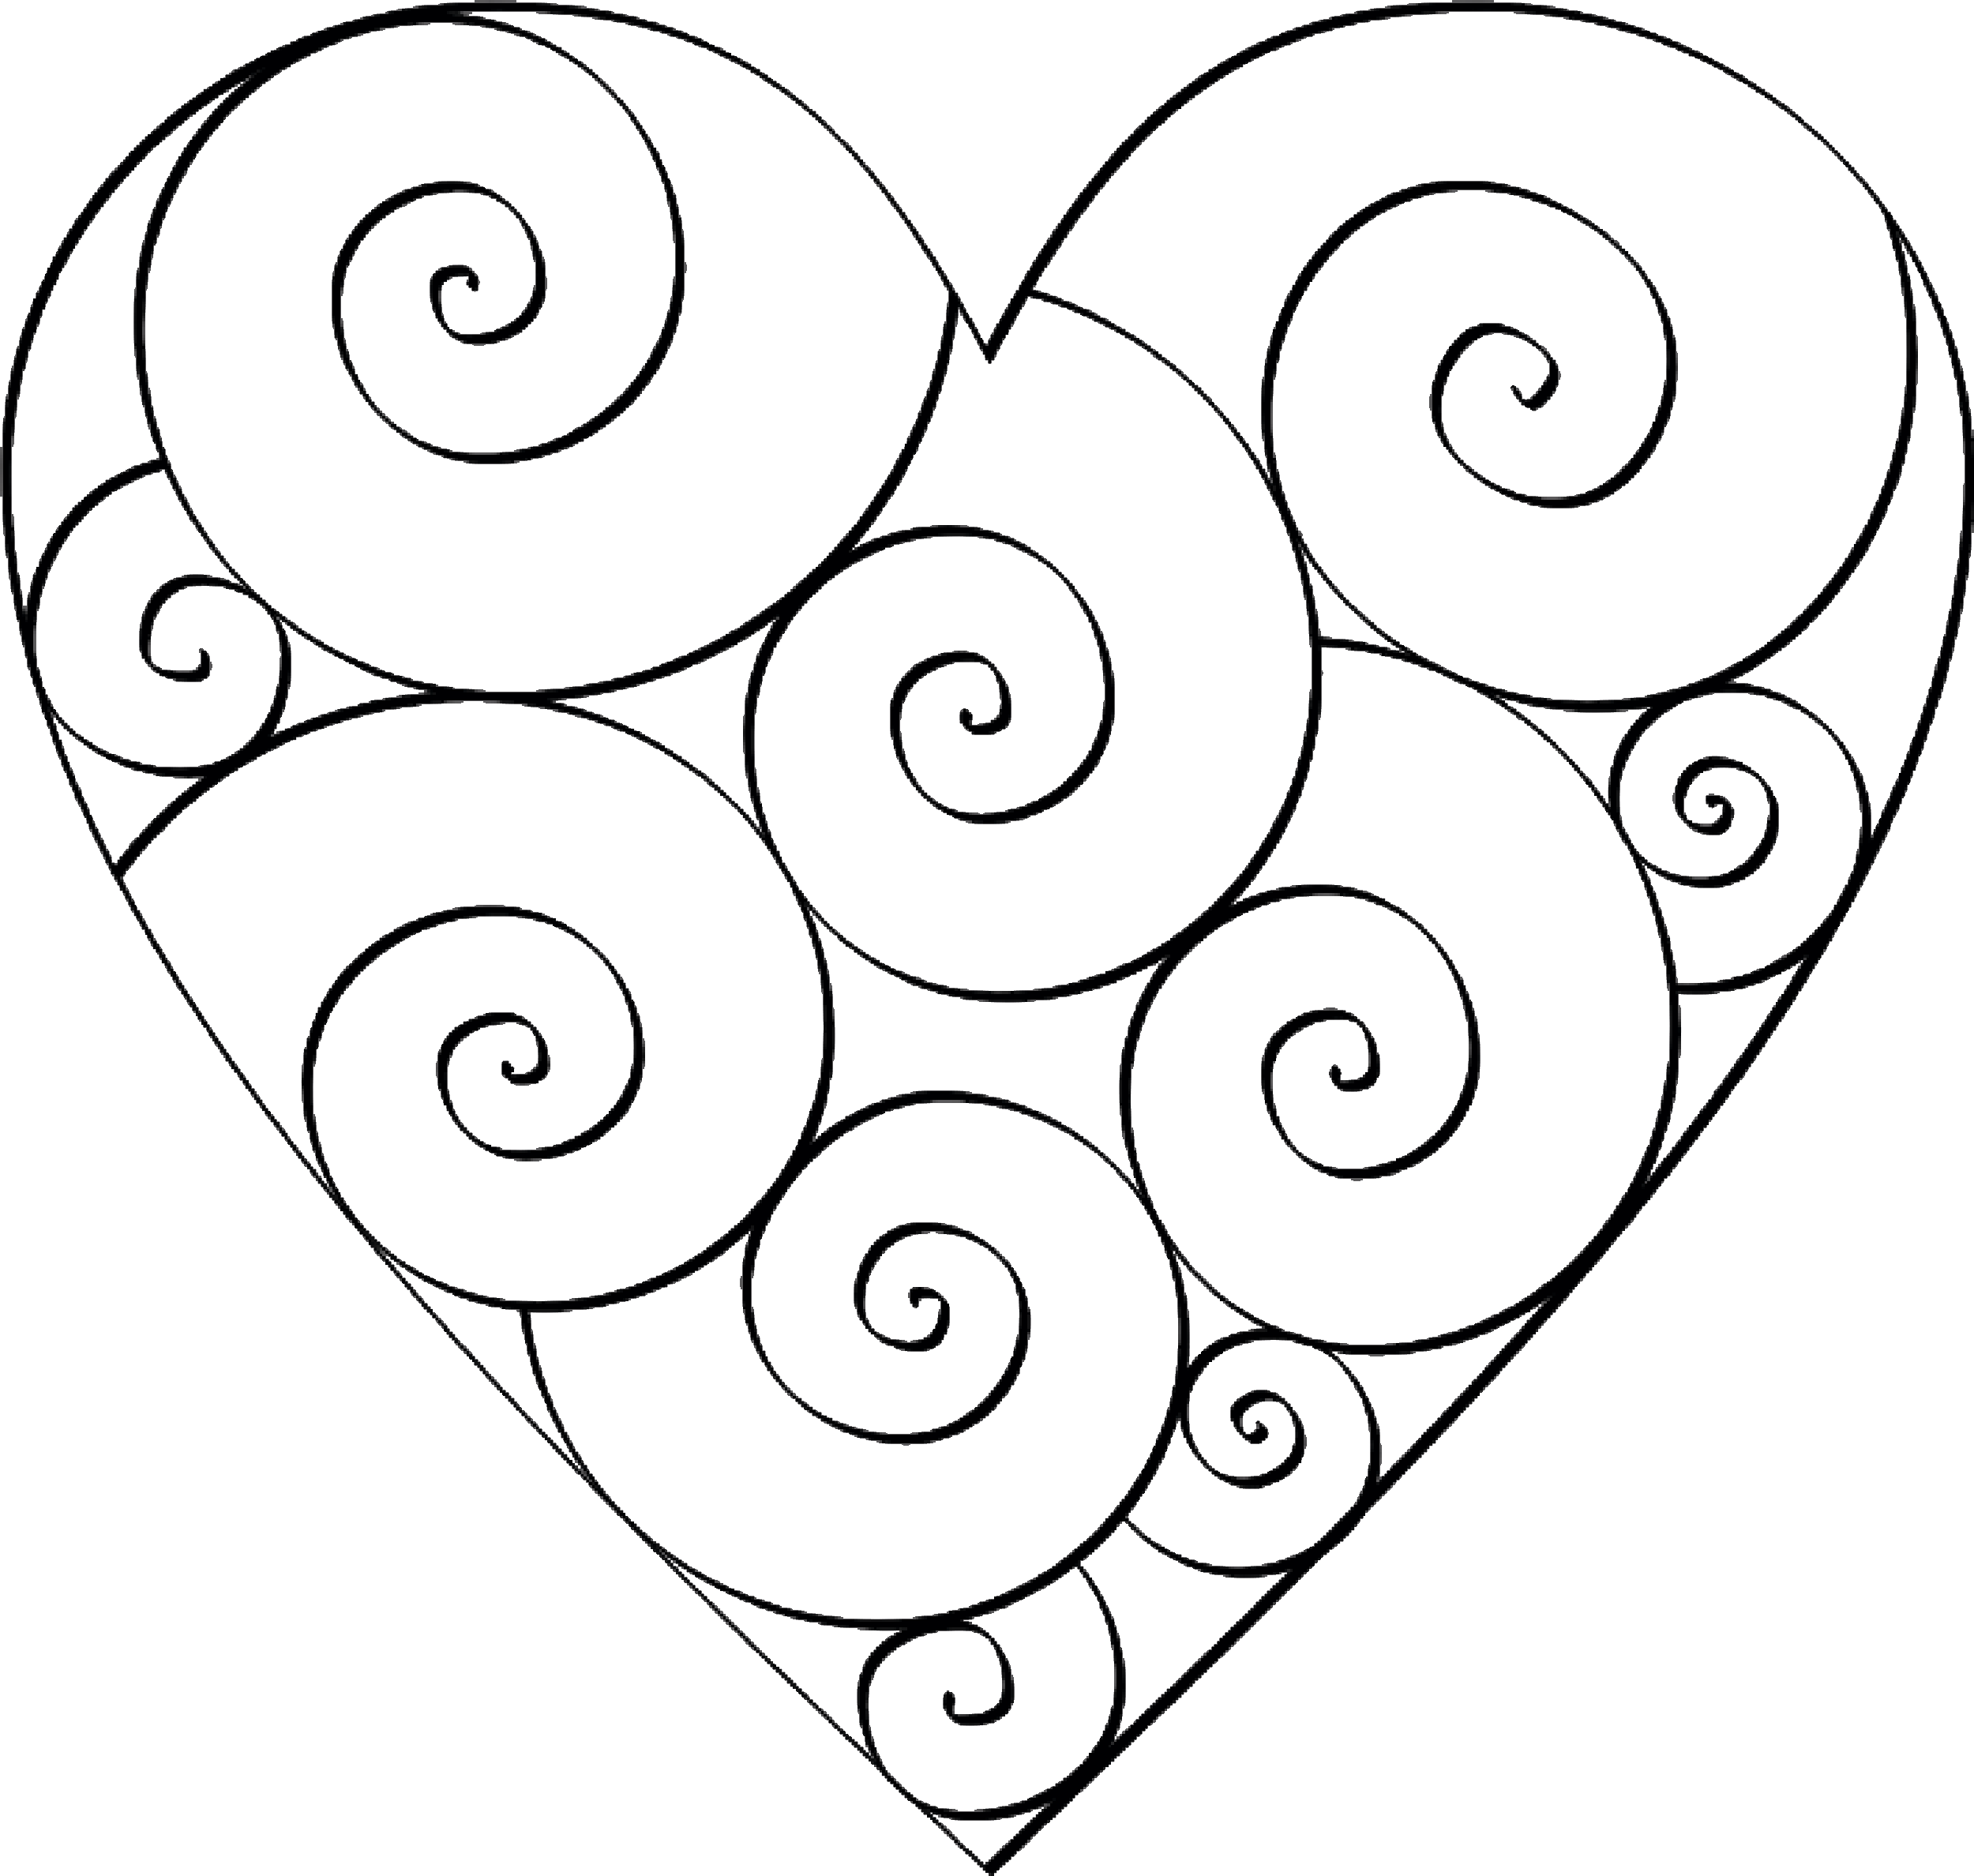 coloring heart for kids free printable heart templates diy 100 ideas for kids coloring heart